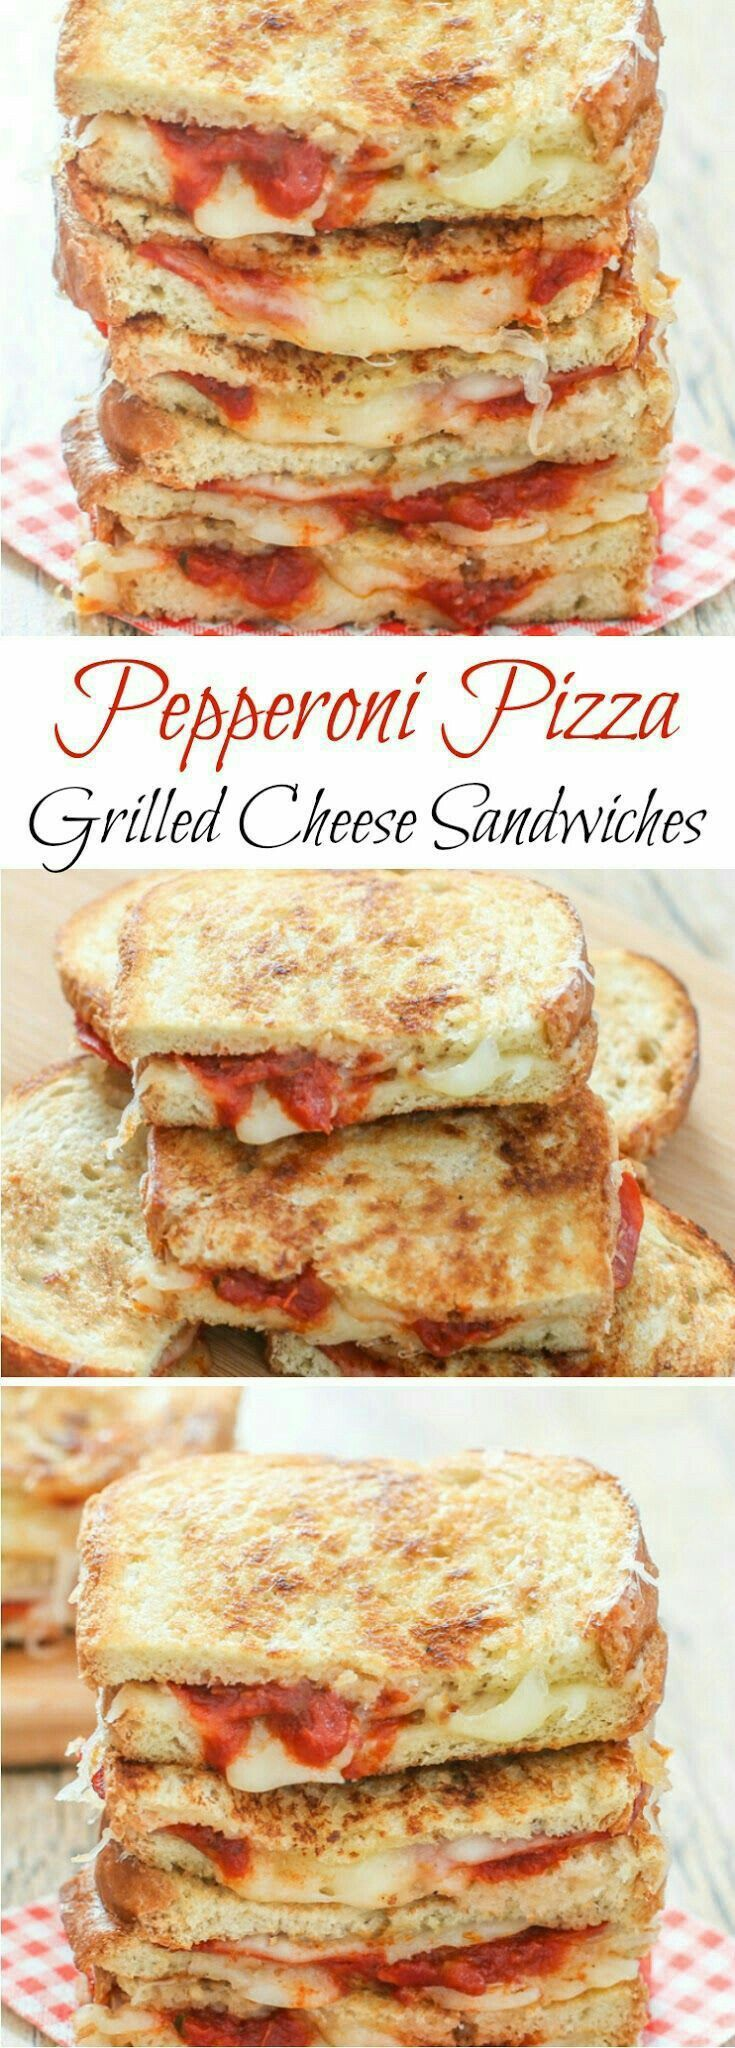 Pizza grill cheese...Need: pepperoni, marinara sauce, Mozzarella, mushrooms, black olives